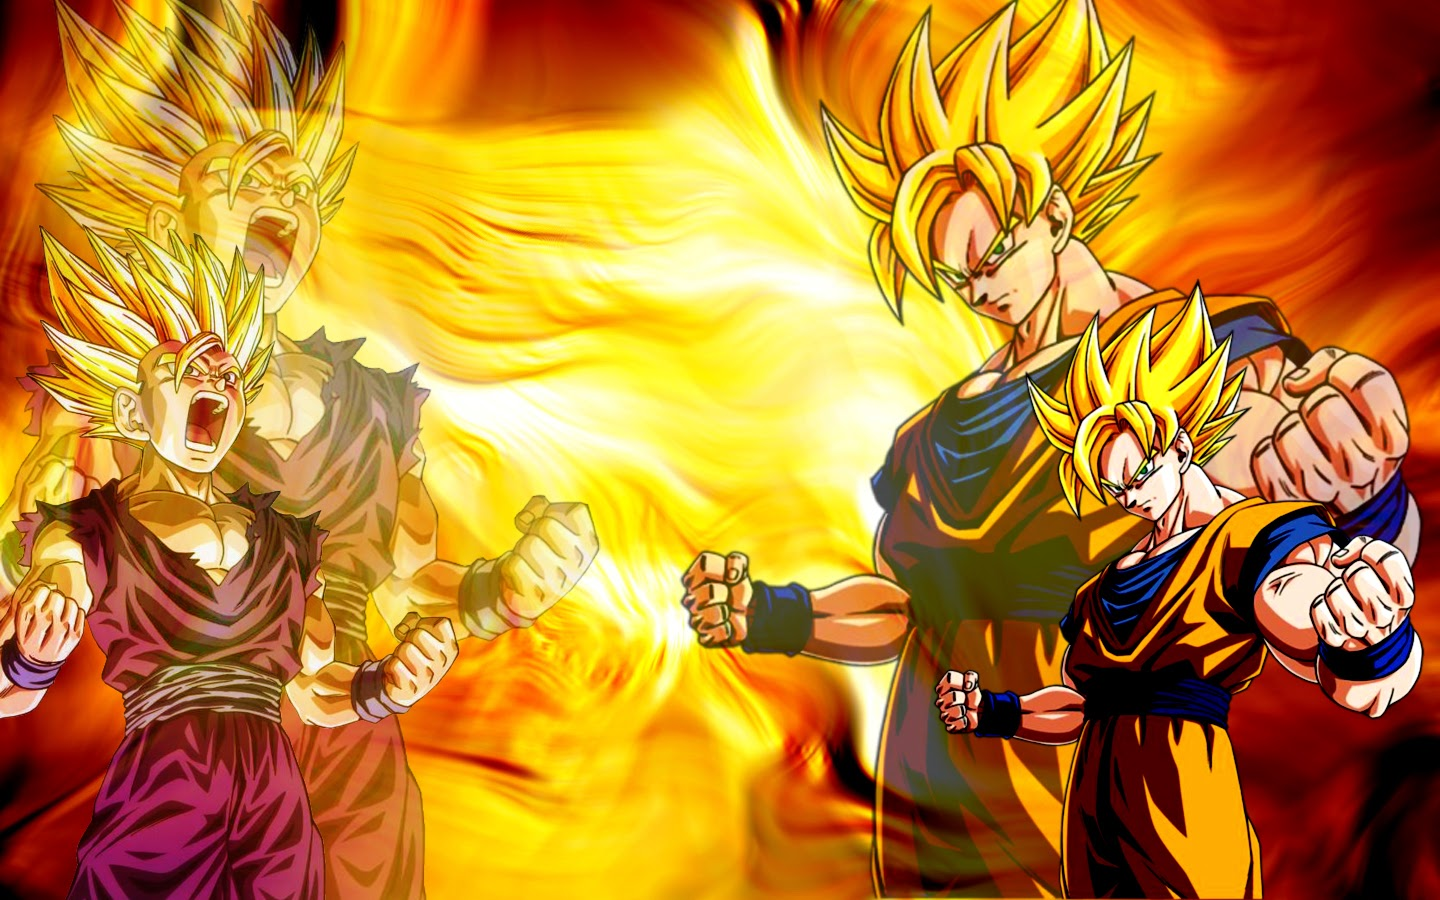 Descargar serie dragon ball z completa 291 291 hd for Chambre dragon ball z